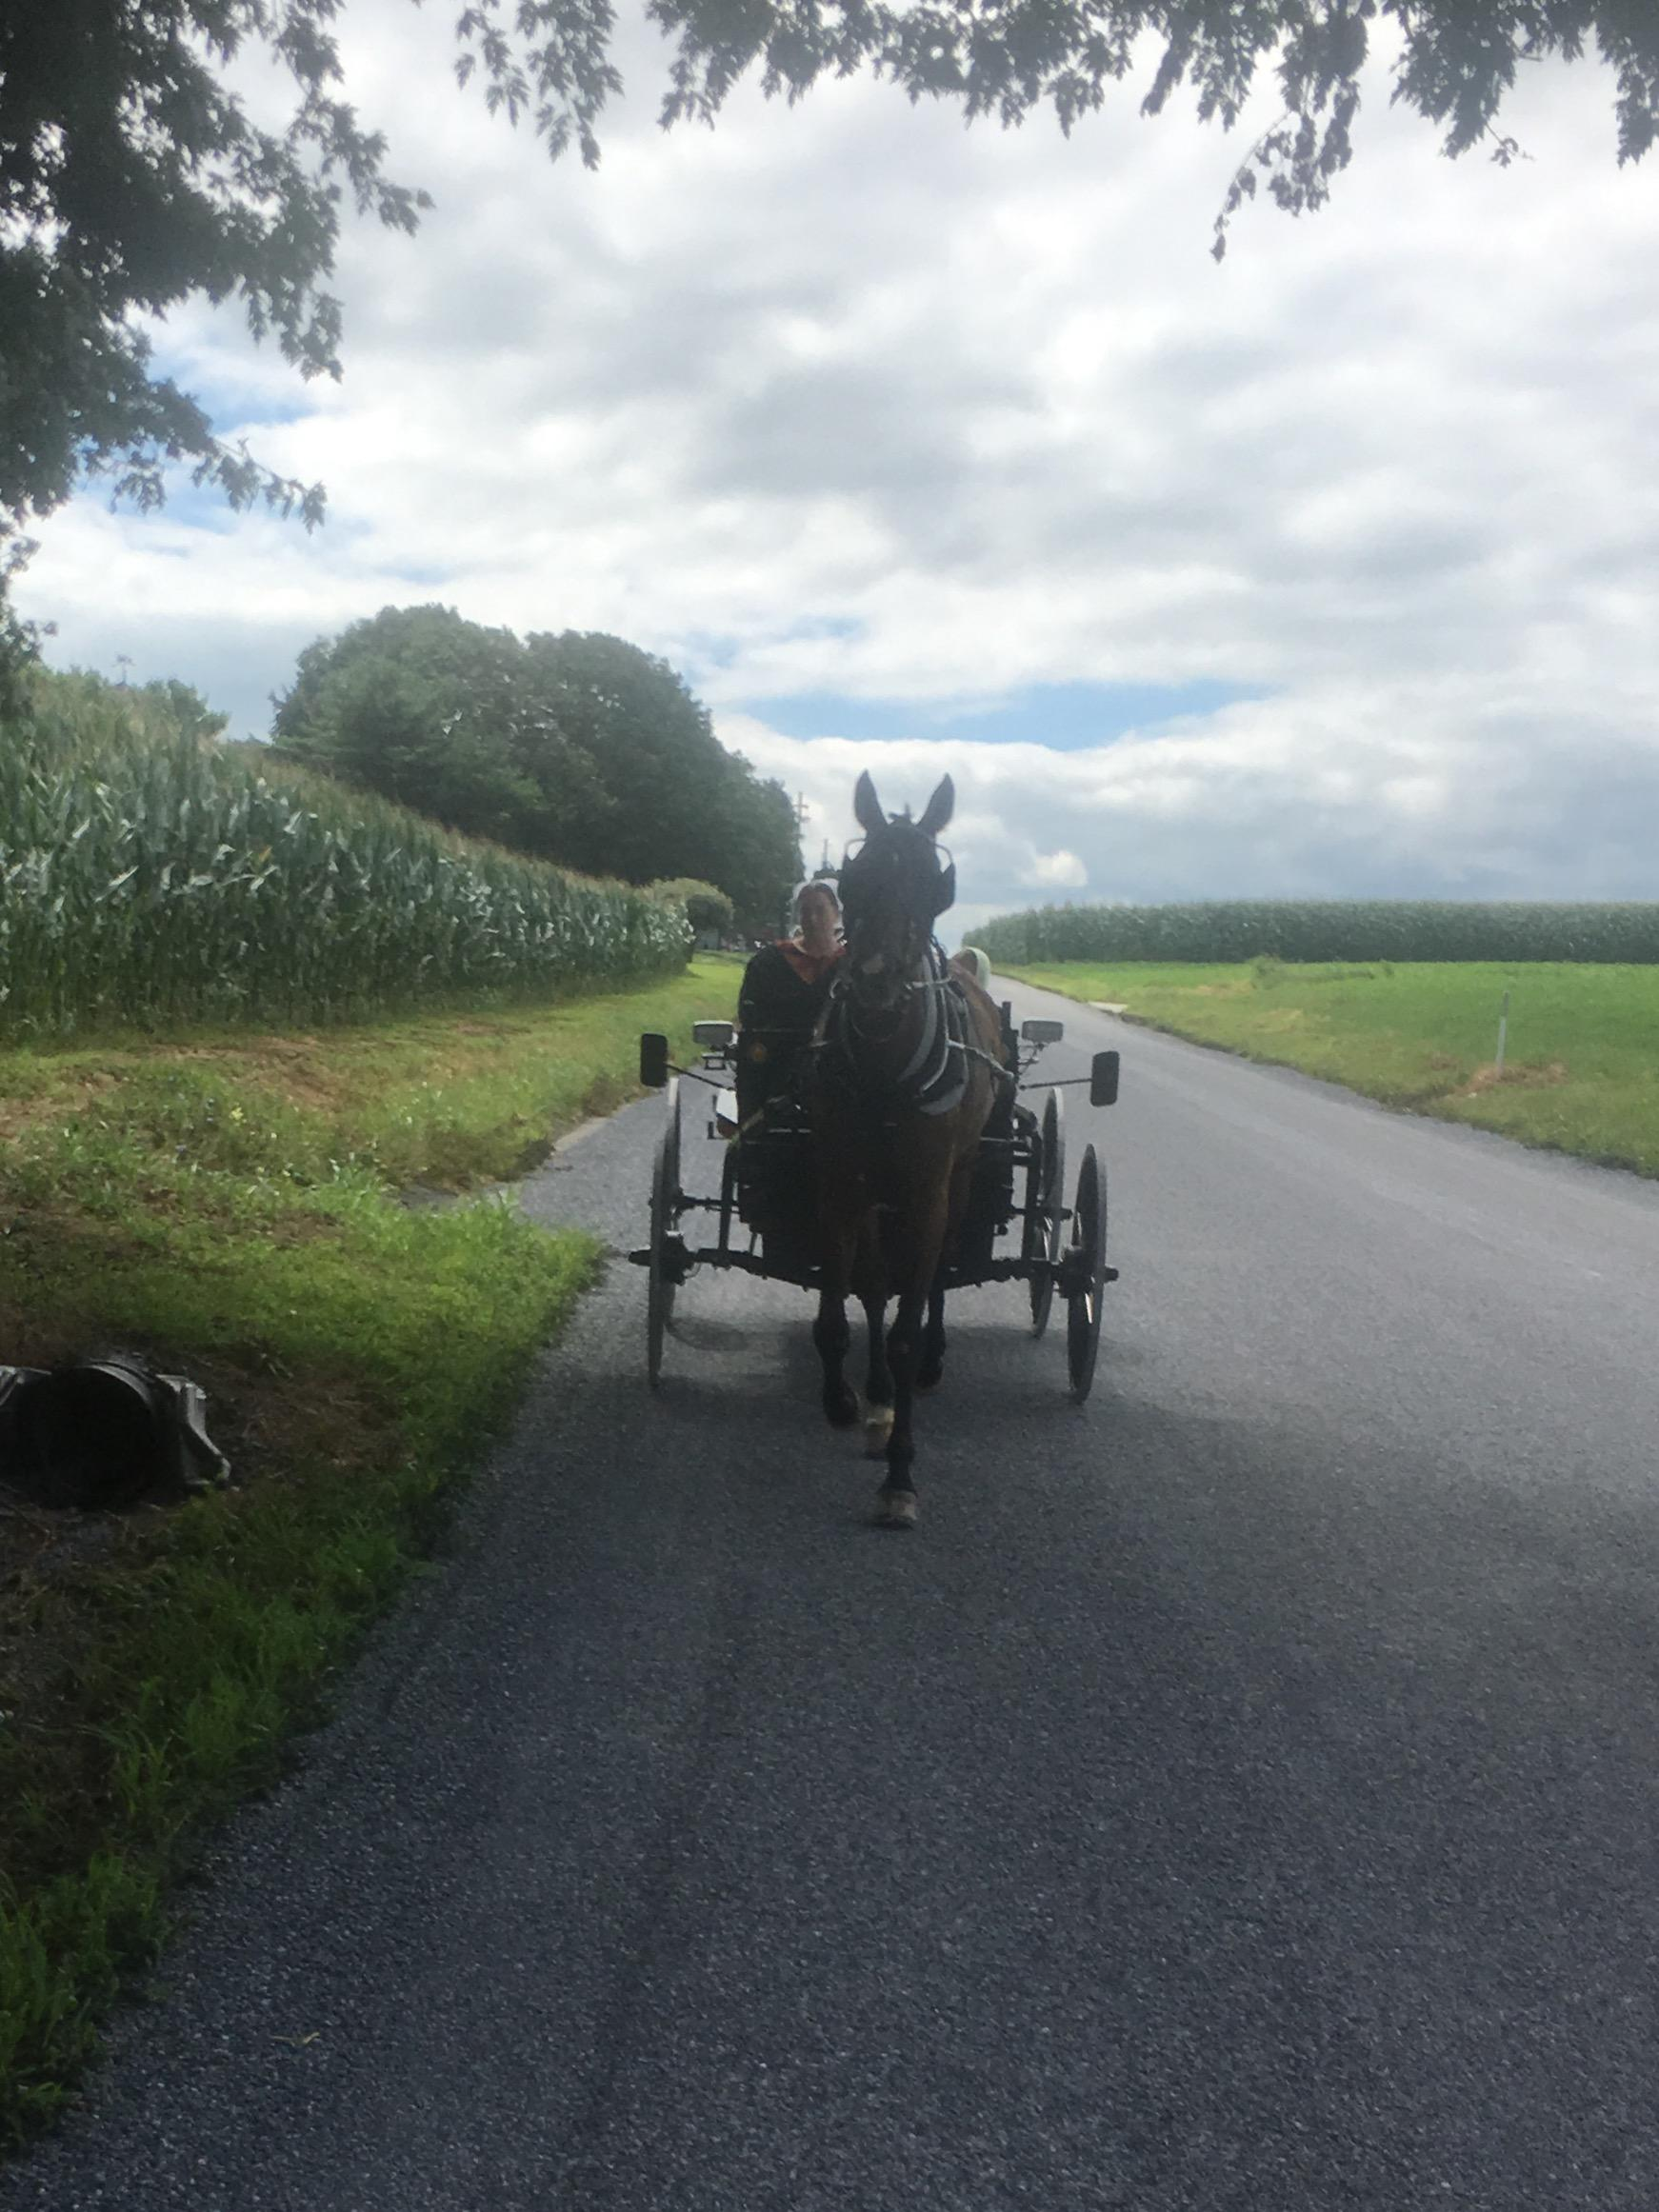 View from Horse and Buggy Ride